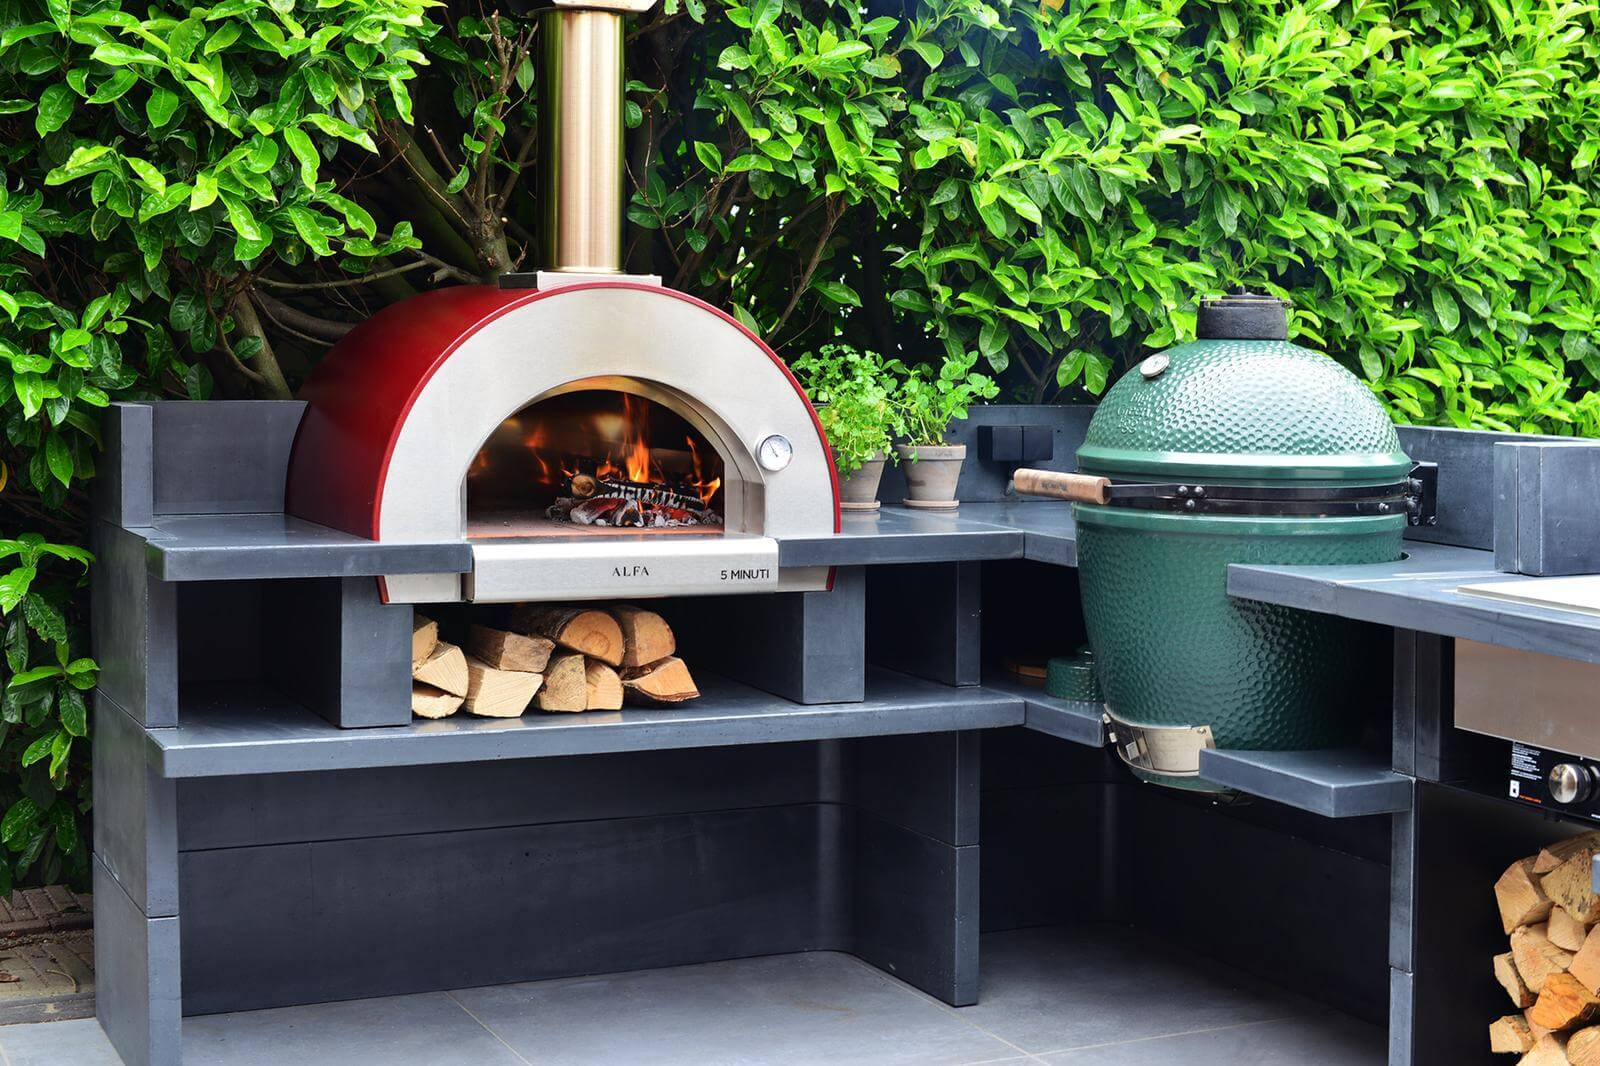 Best Wood Fired Pizza Ovens - Taking a Look at Top 10 ...